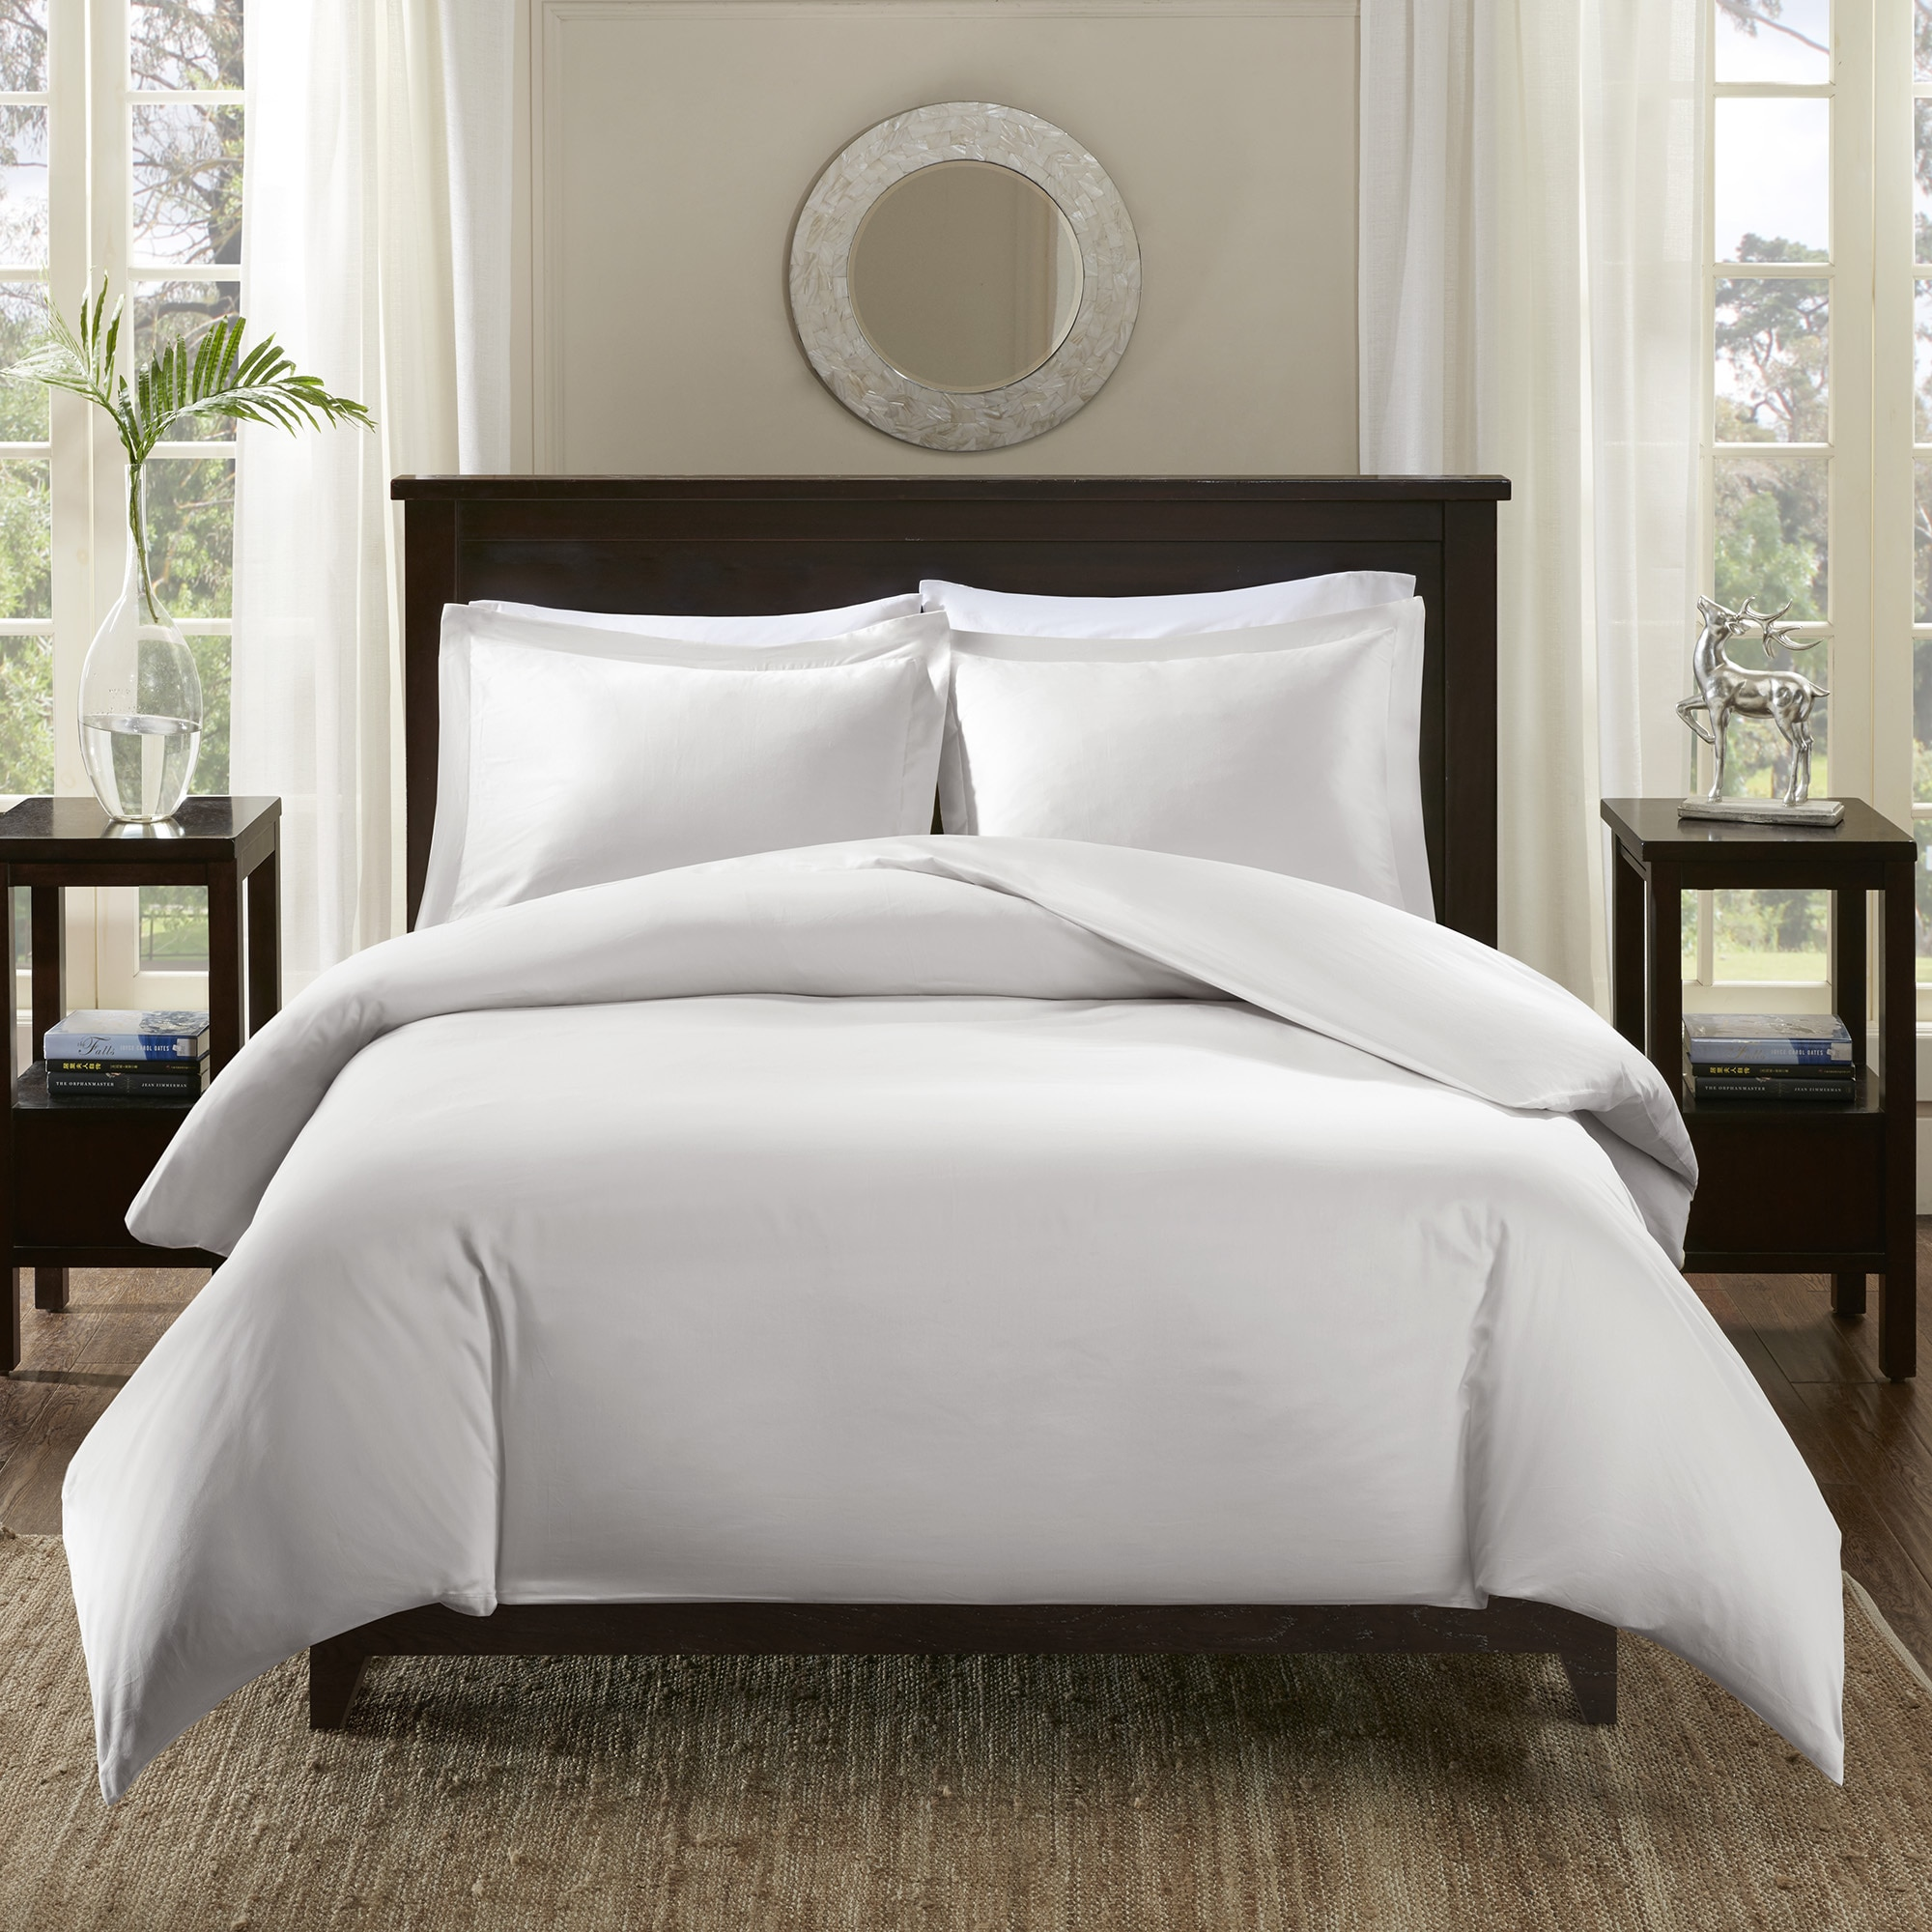 Madison Park Signature 600 Thread Count Infinity Cotton Duvet Cover Set Free Shipping Today 20984862